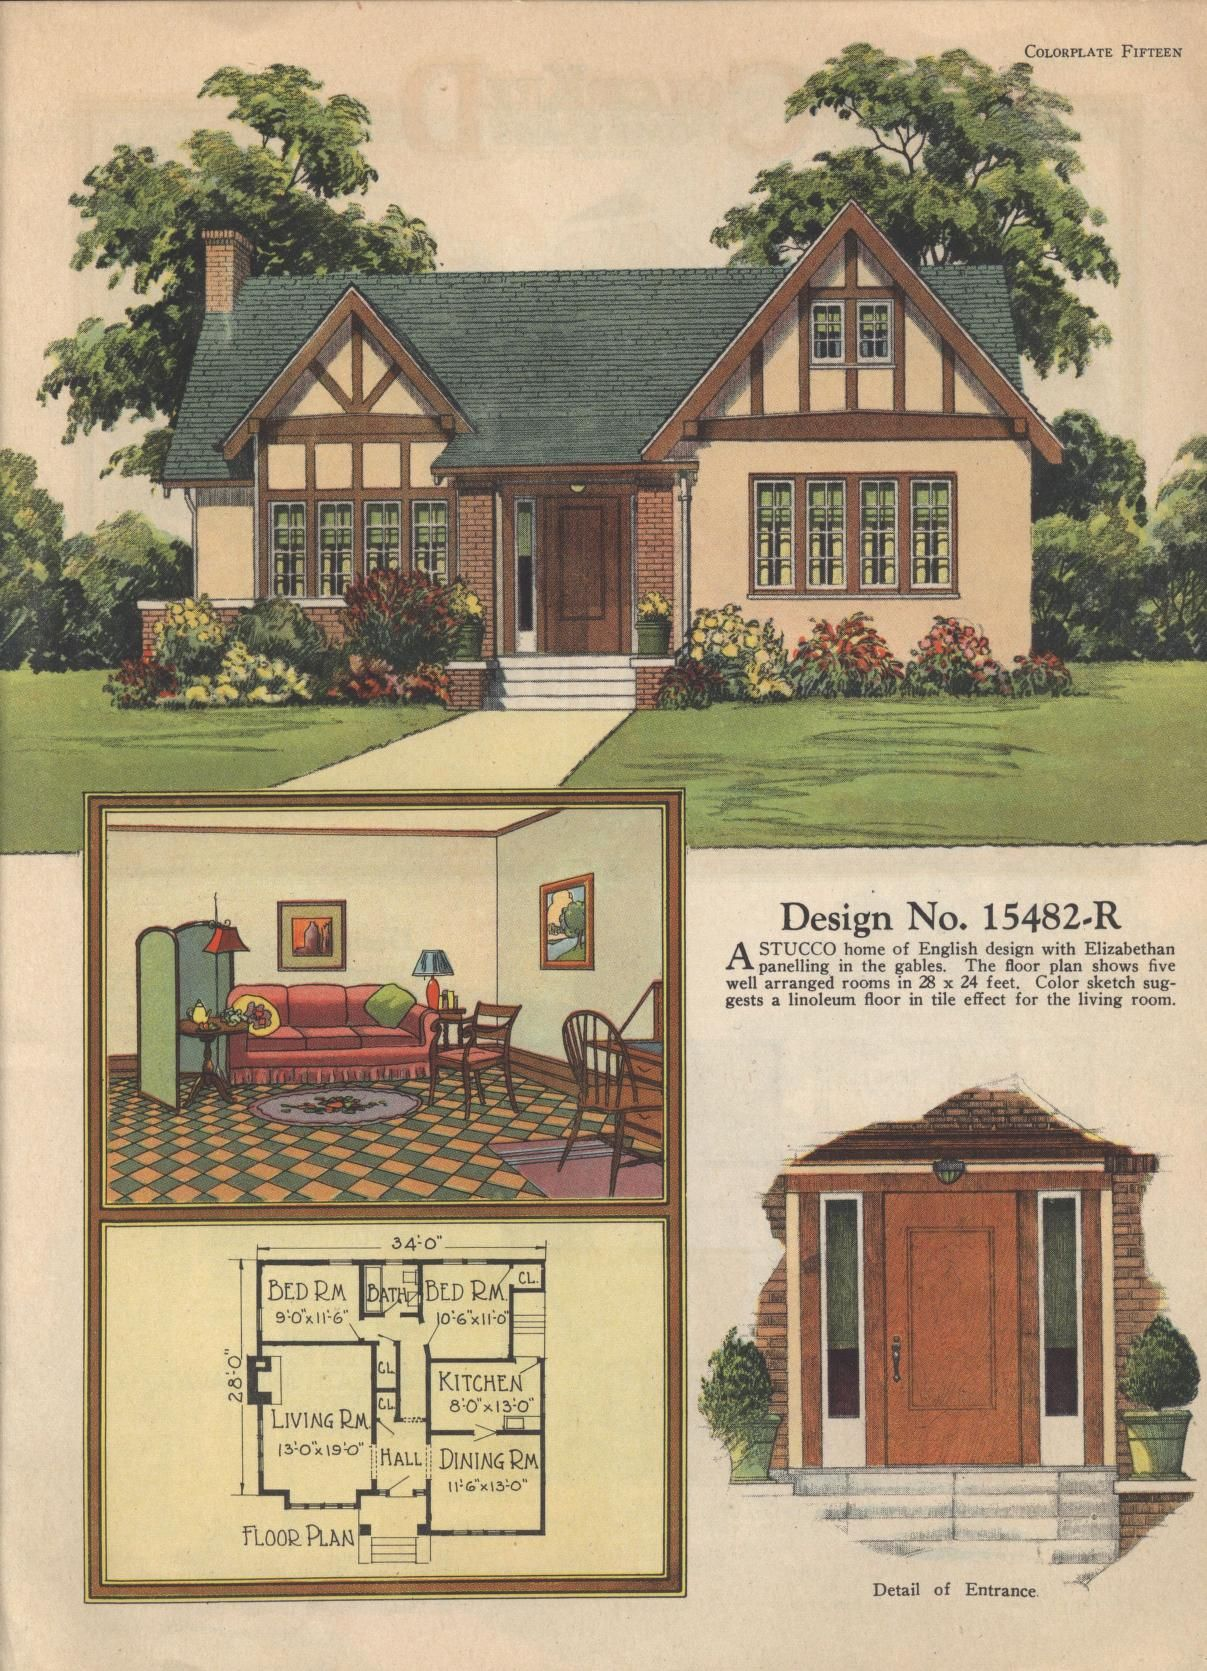 Colorkeed home plans radford 1920s vintage house plans for Vintage home plans